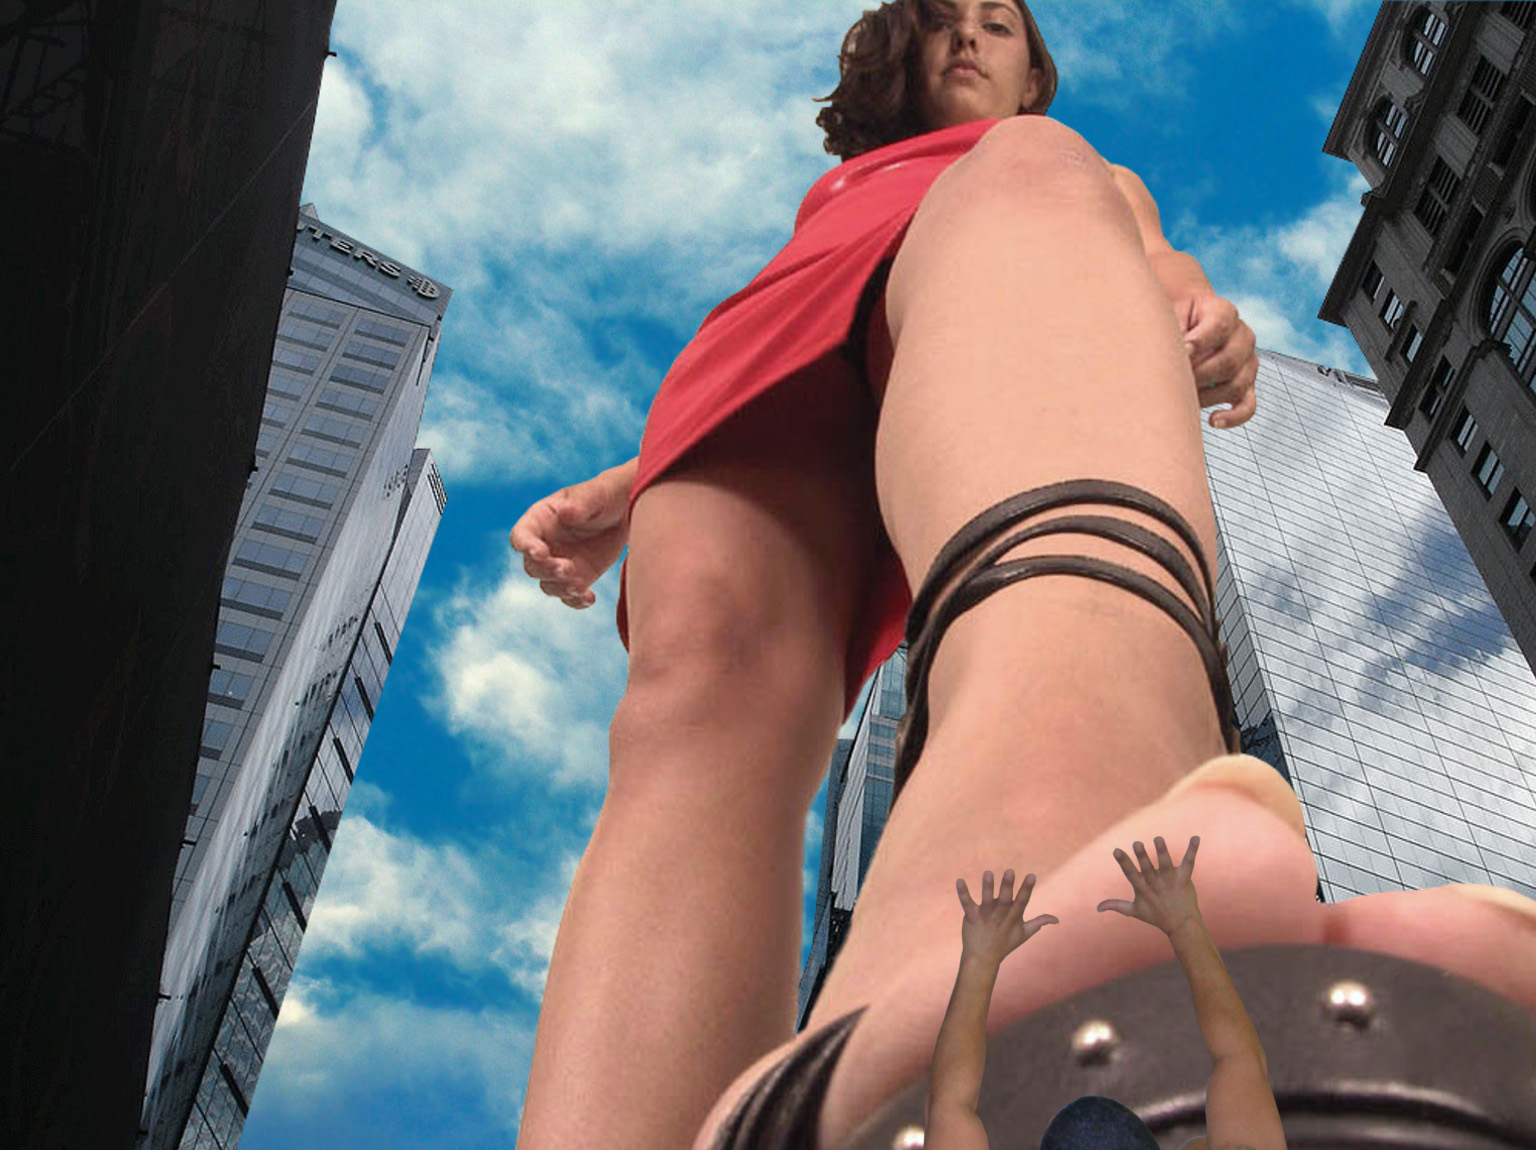 Giantess Tiny Man